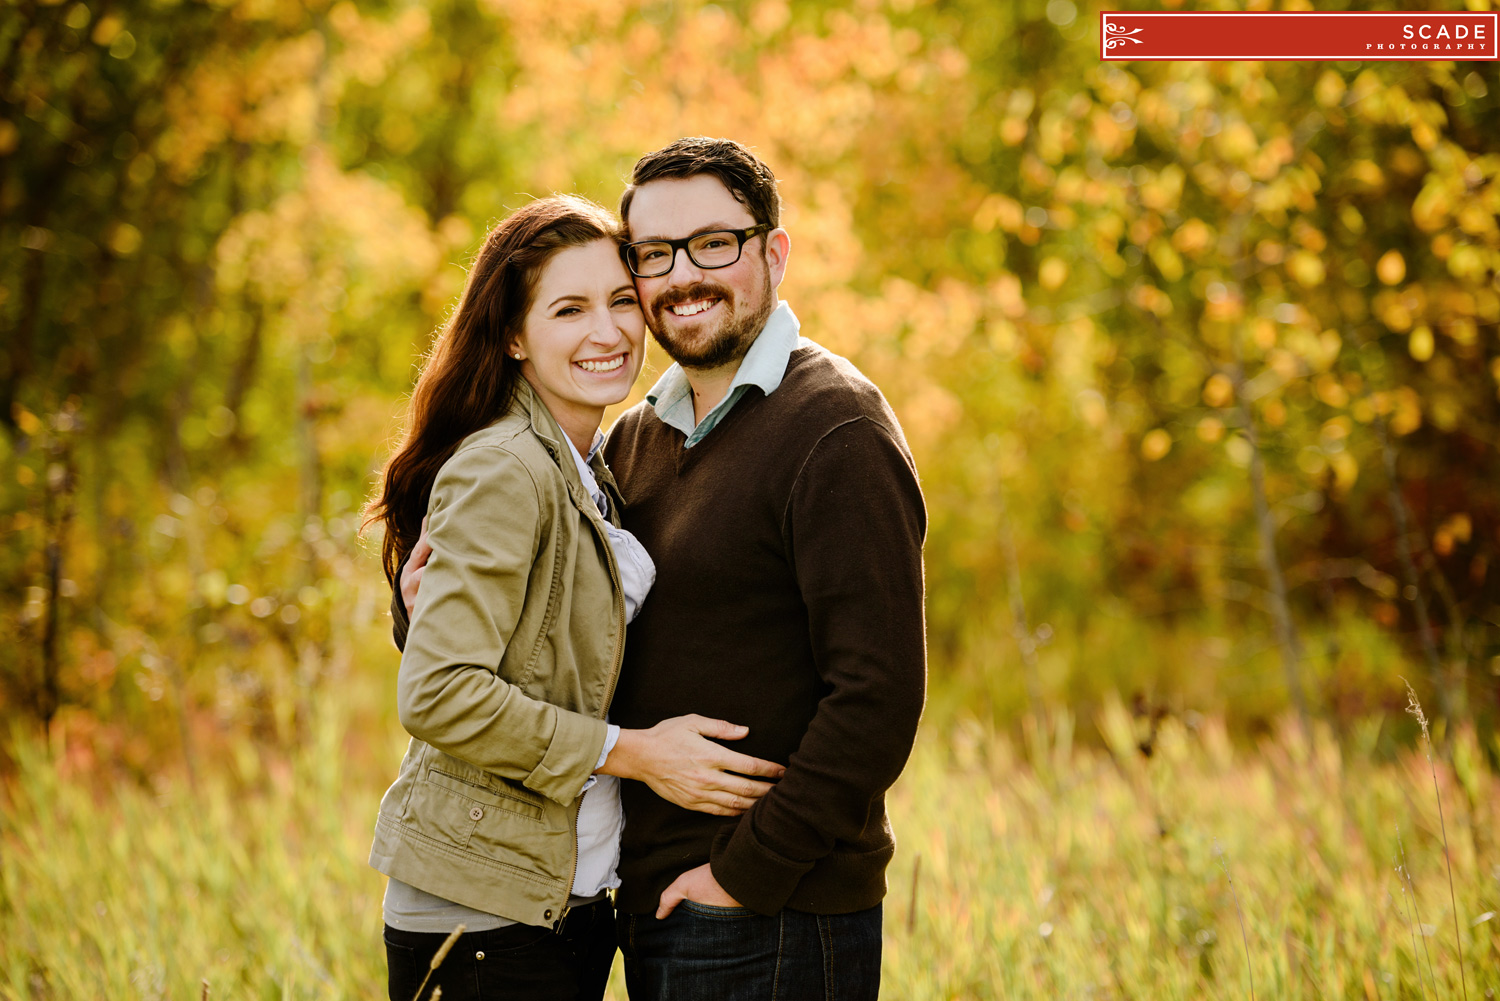 Edmonton Fall Family Session - Emmerzael -